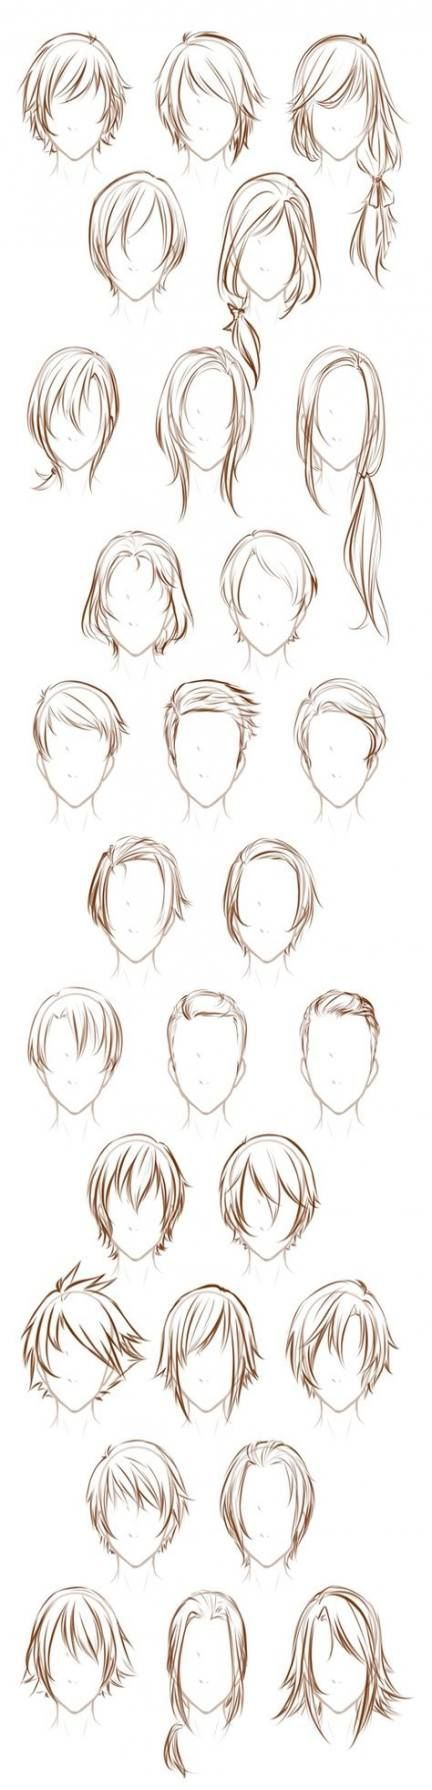 66 Trendy drawing hair reference anime